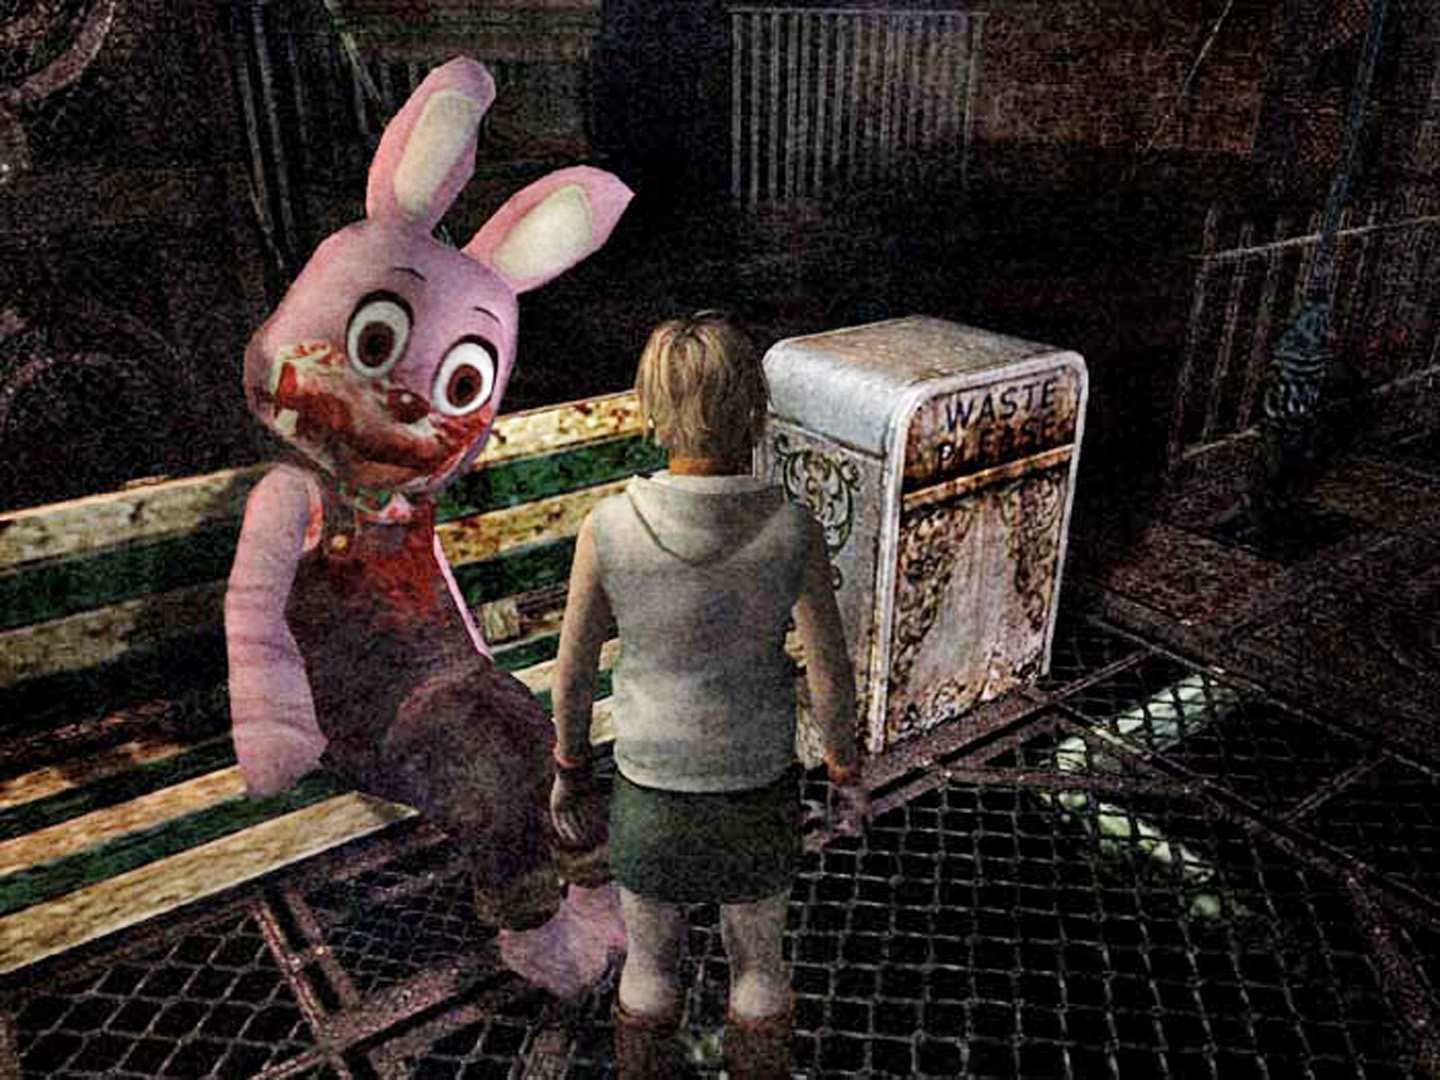 Silent Hill: Original composer suggests continuation of the series